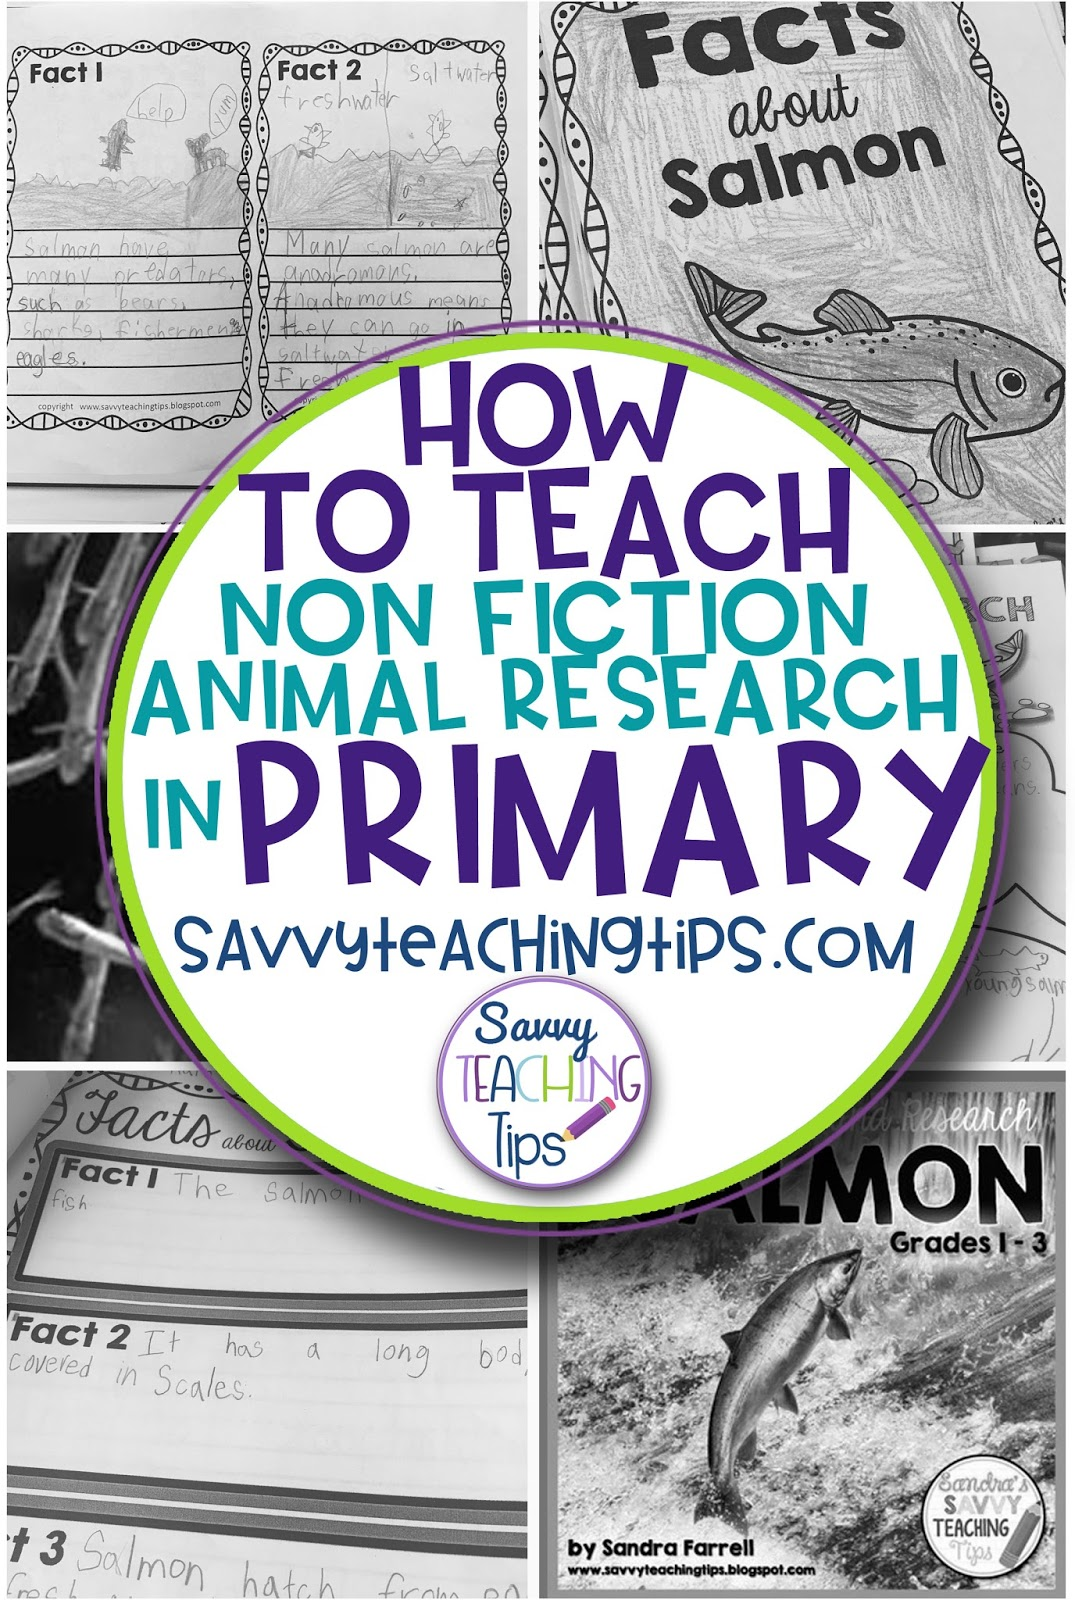 How To Teach Non Fiction Animal Research In Primary